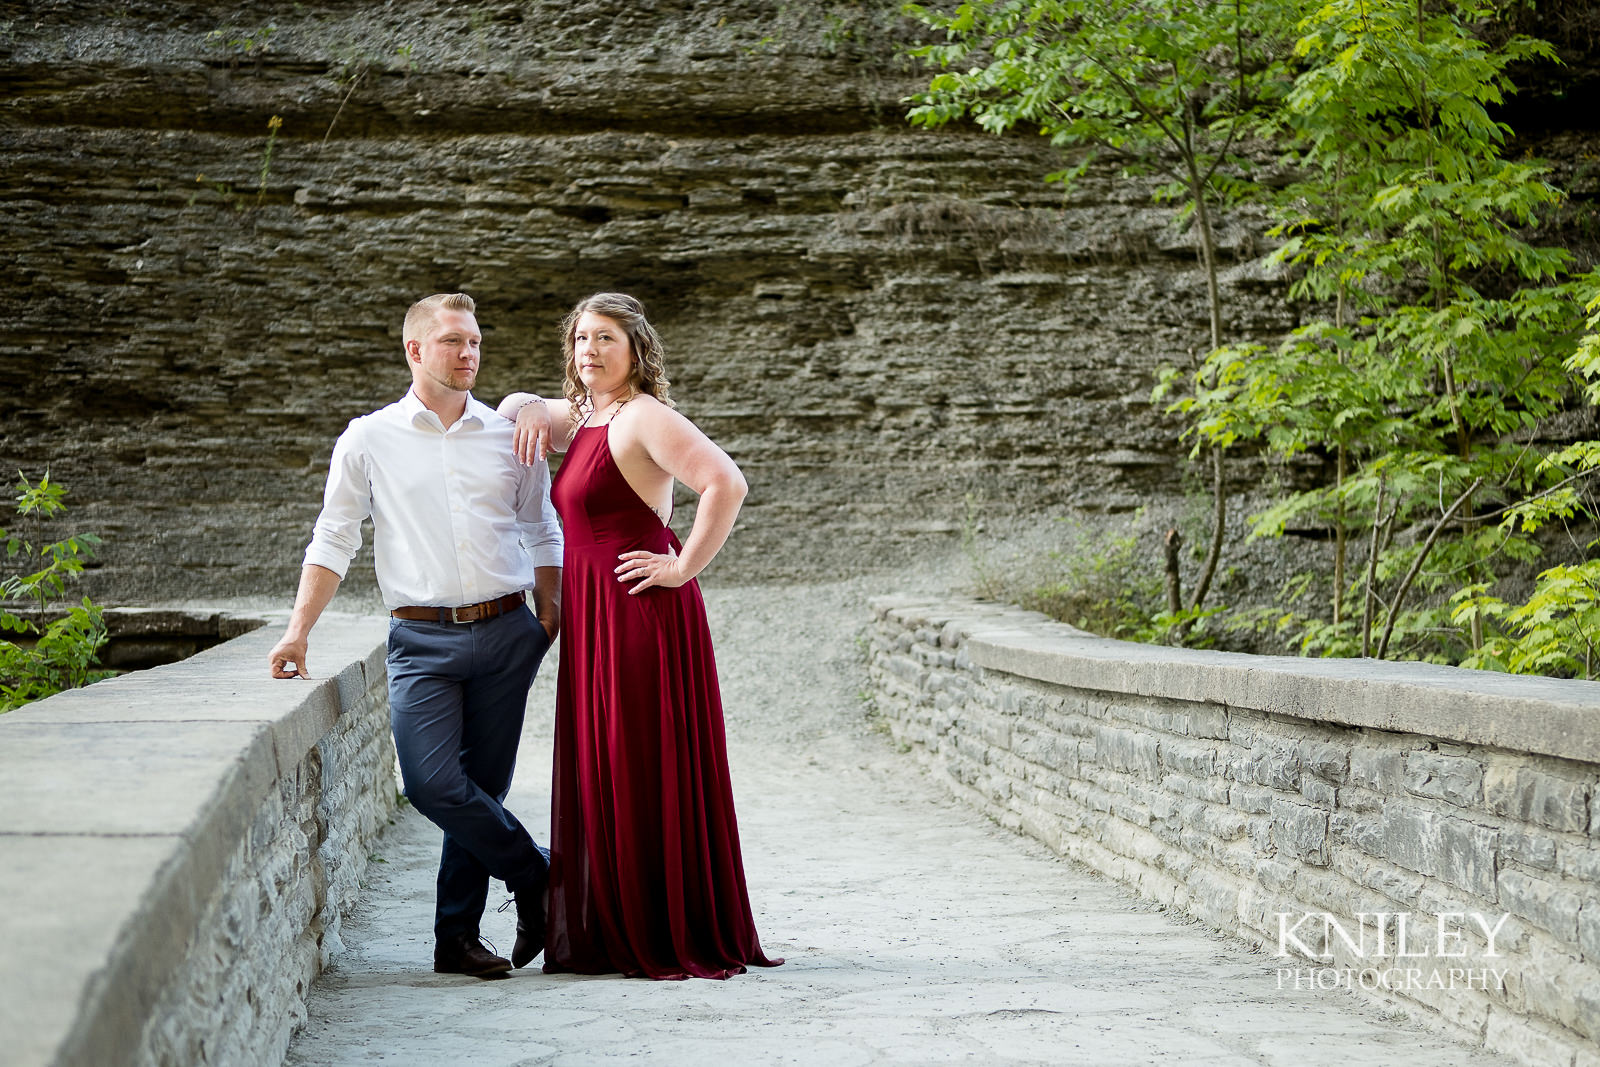 011 - Letchworth State Park Engagement Pictures -XT2B7185.jpg